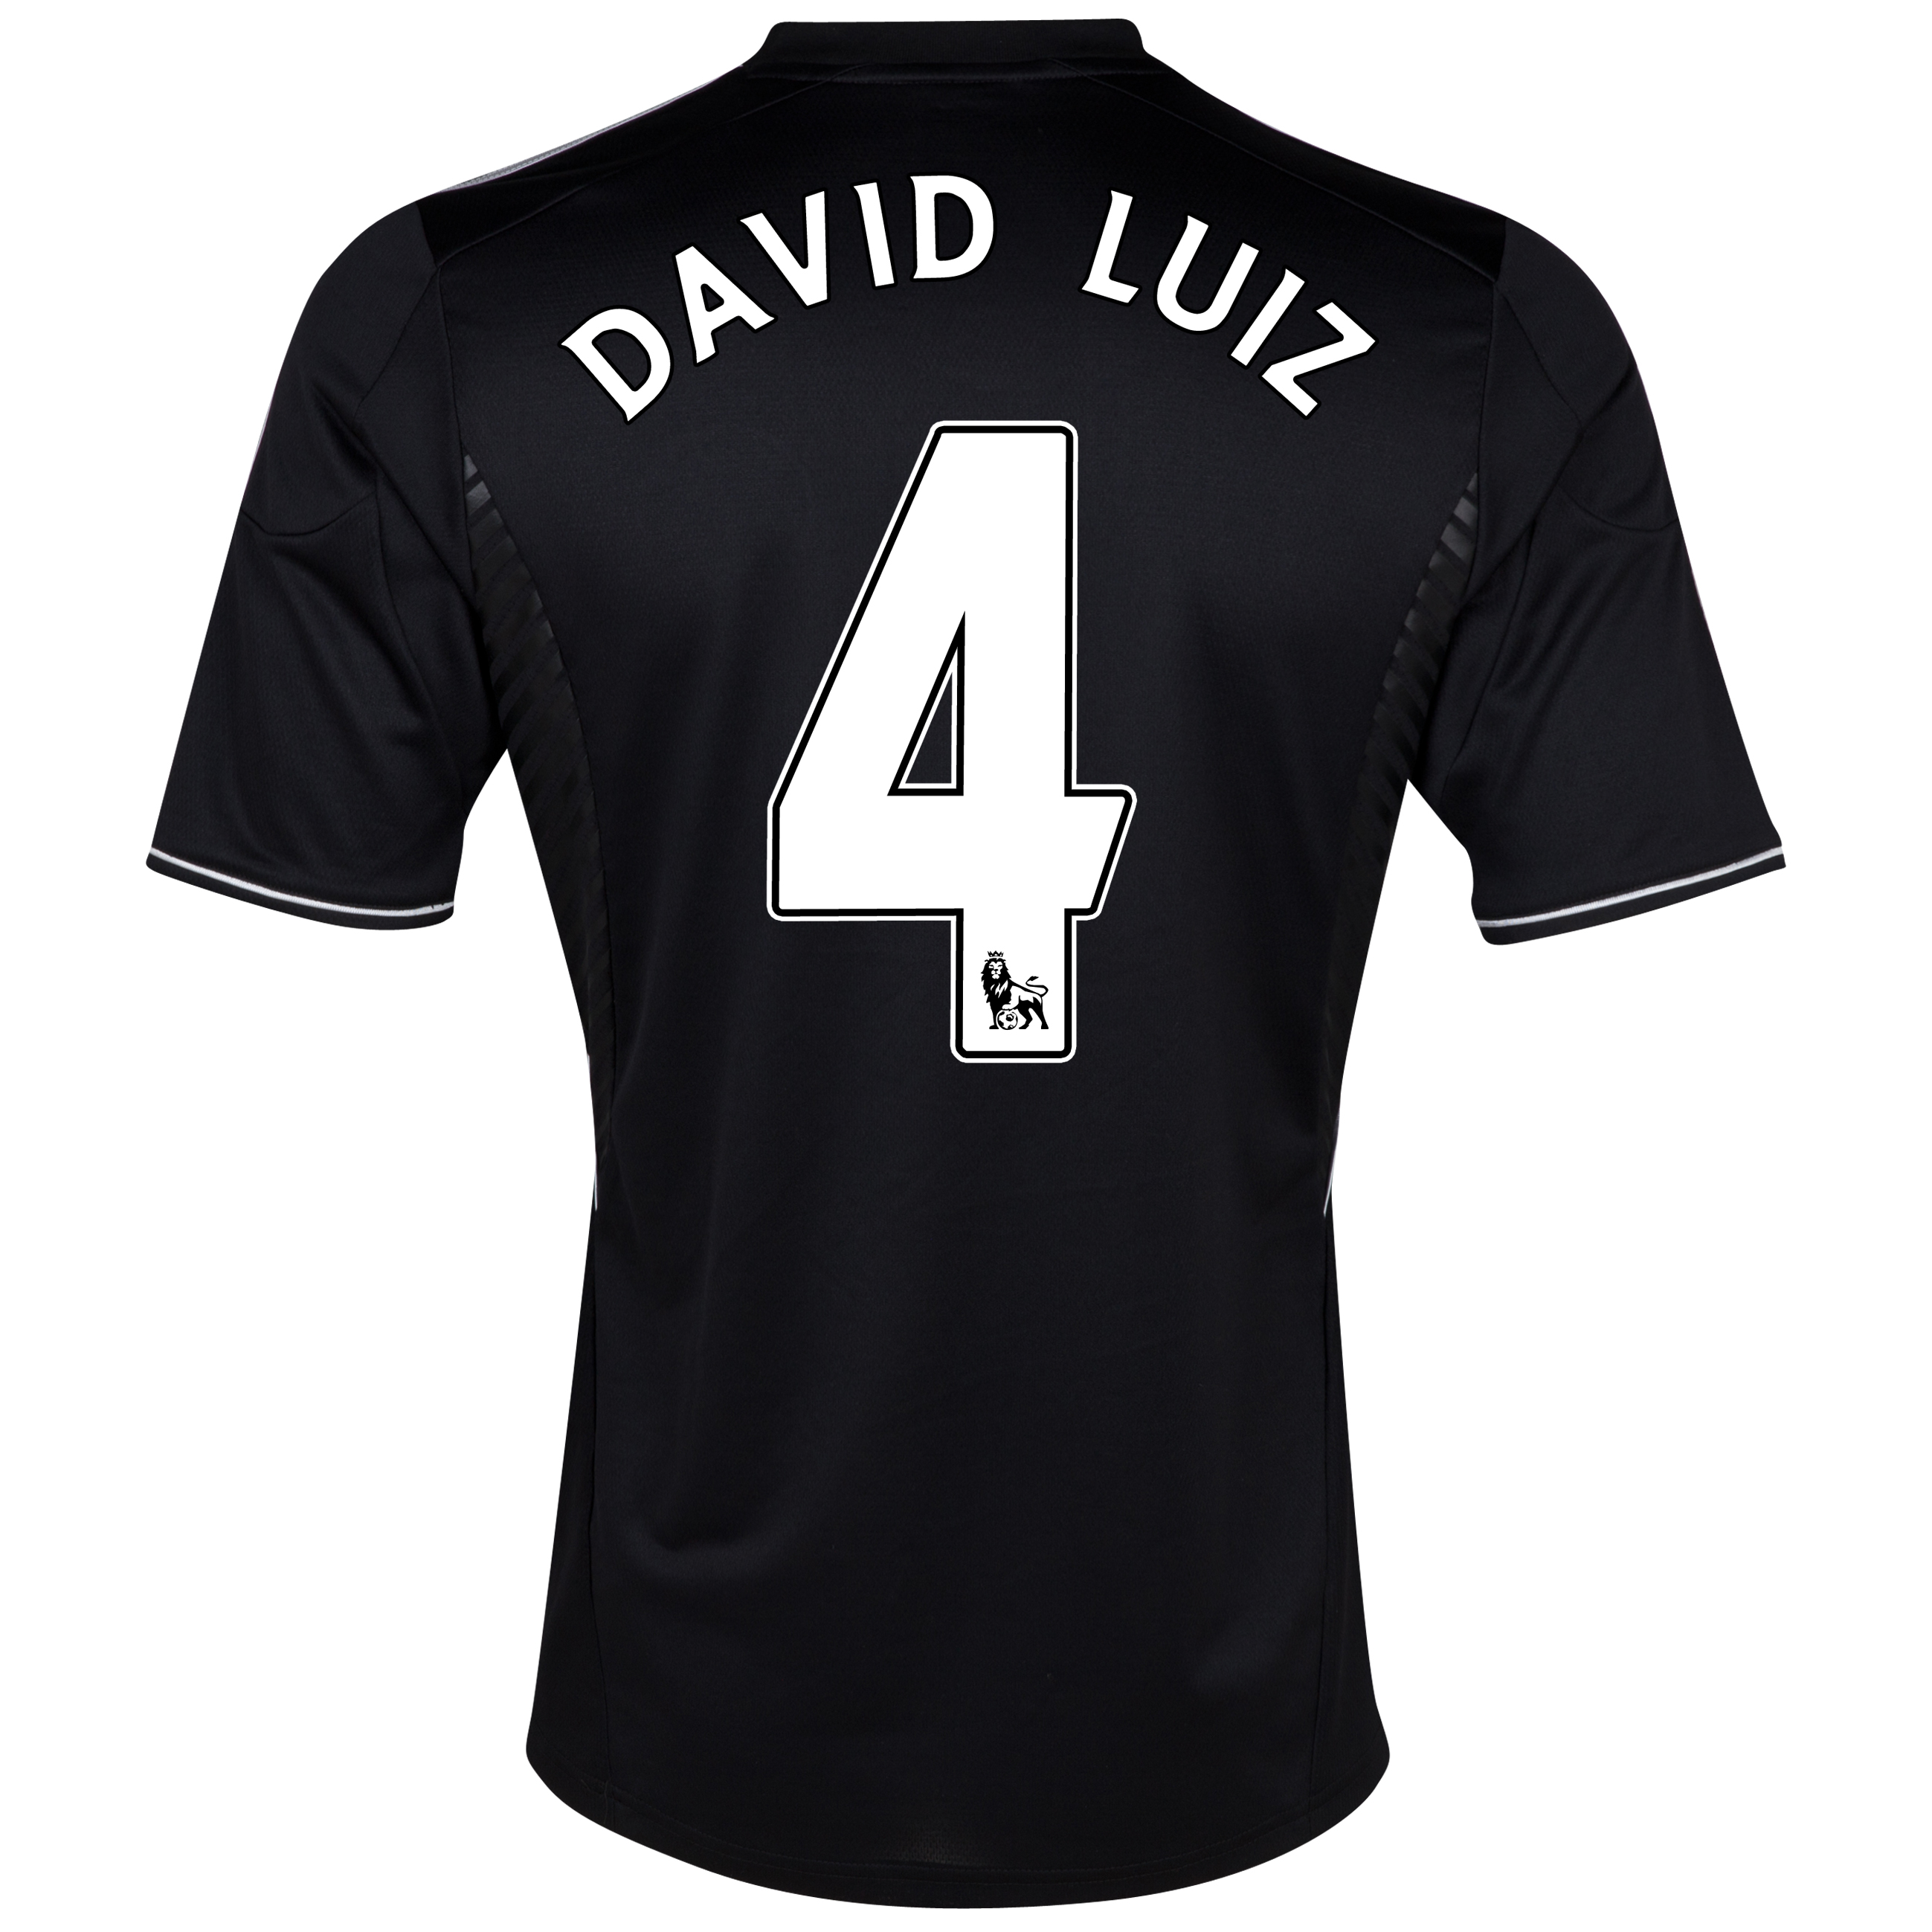 Chelsea Third Shirt 2013/14 with David Luiz 4 printing